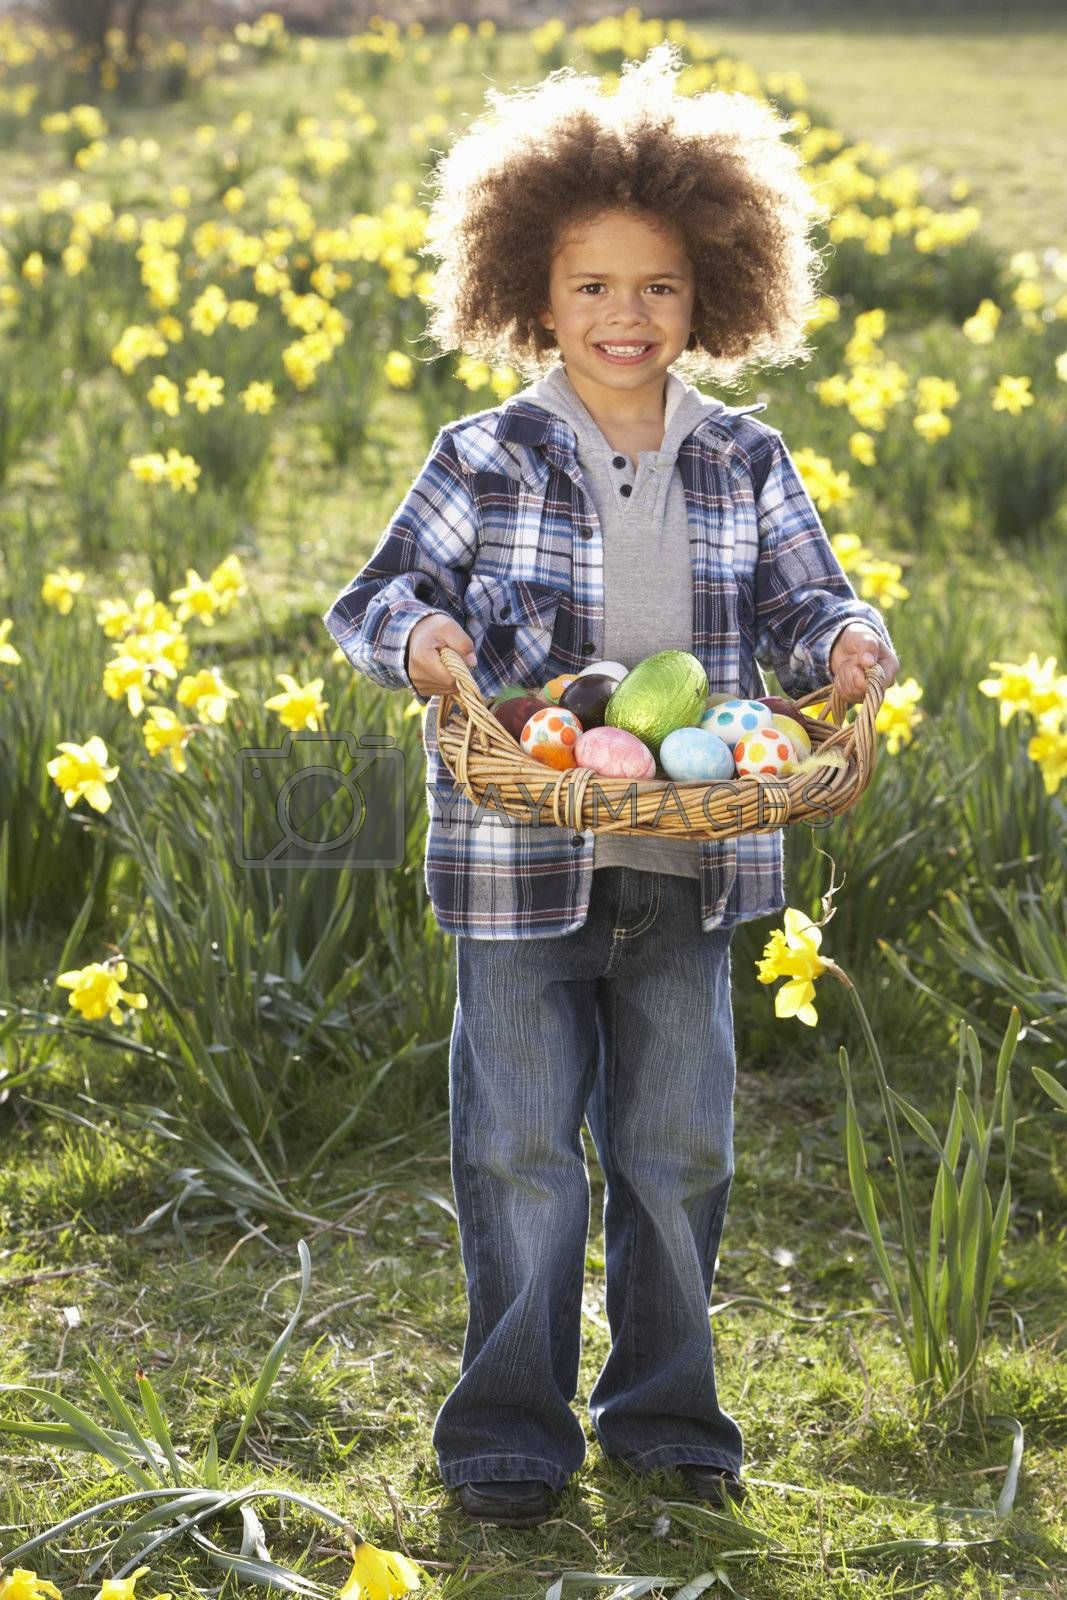 Royalty free image of Boy On Easter Egg Hunt In Daffodil Field by omg_images